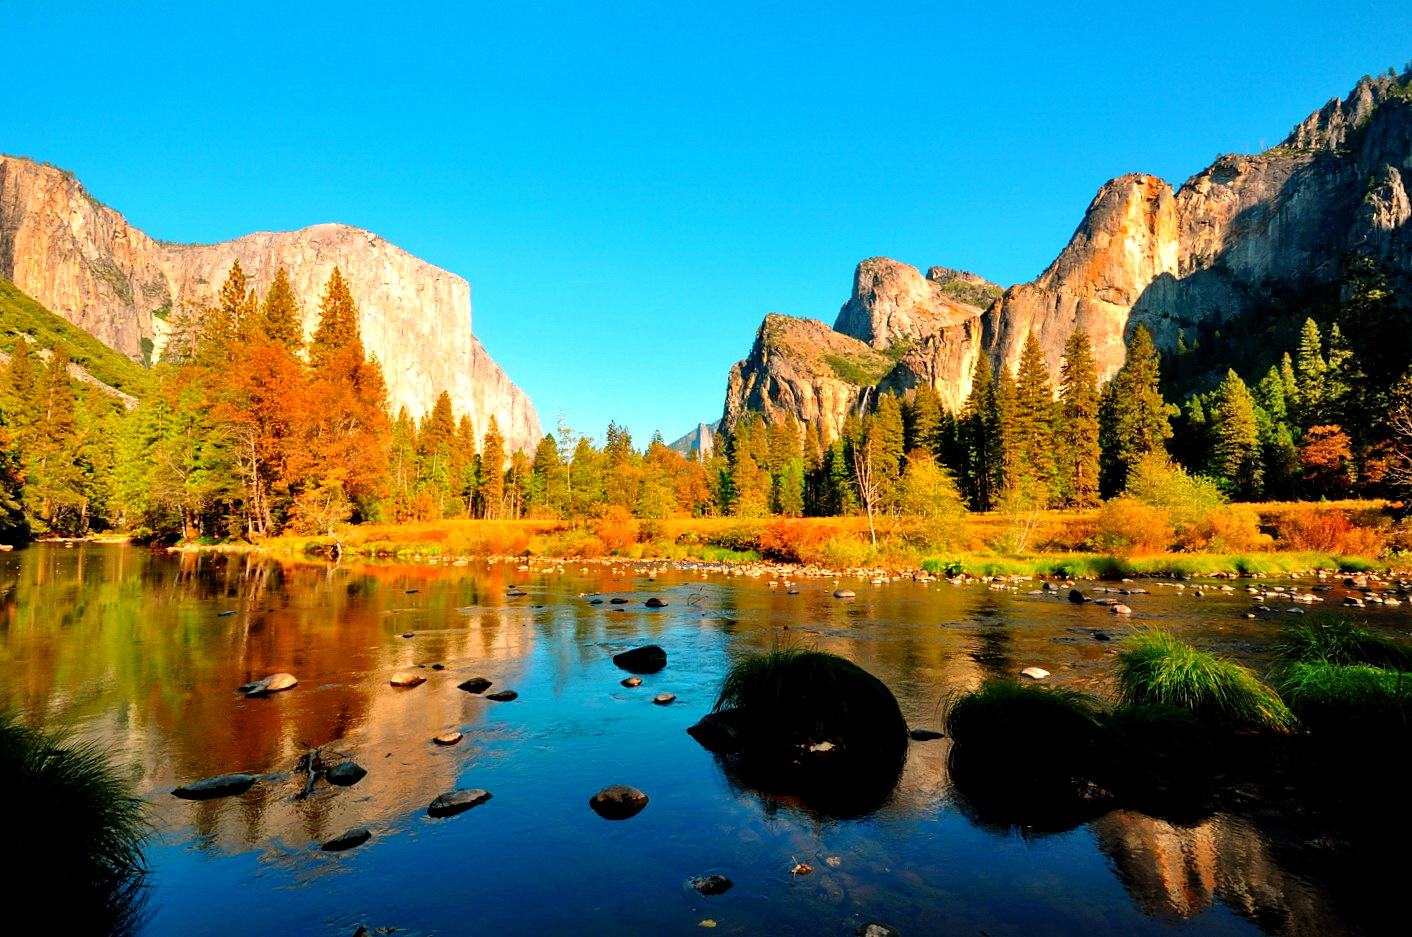 Bing Fall Wallpaper Most Breathtaking Usa National Parks To Visit For Fall Colors